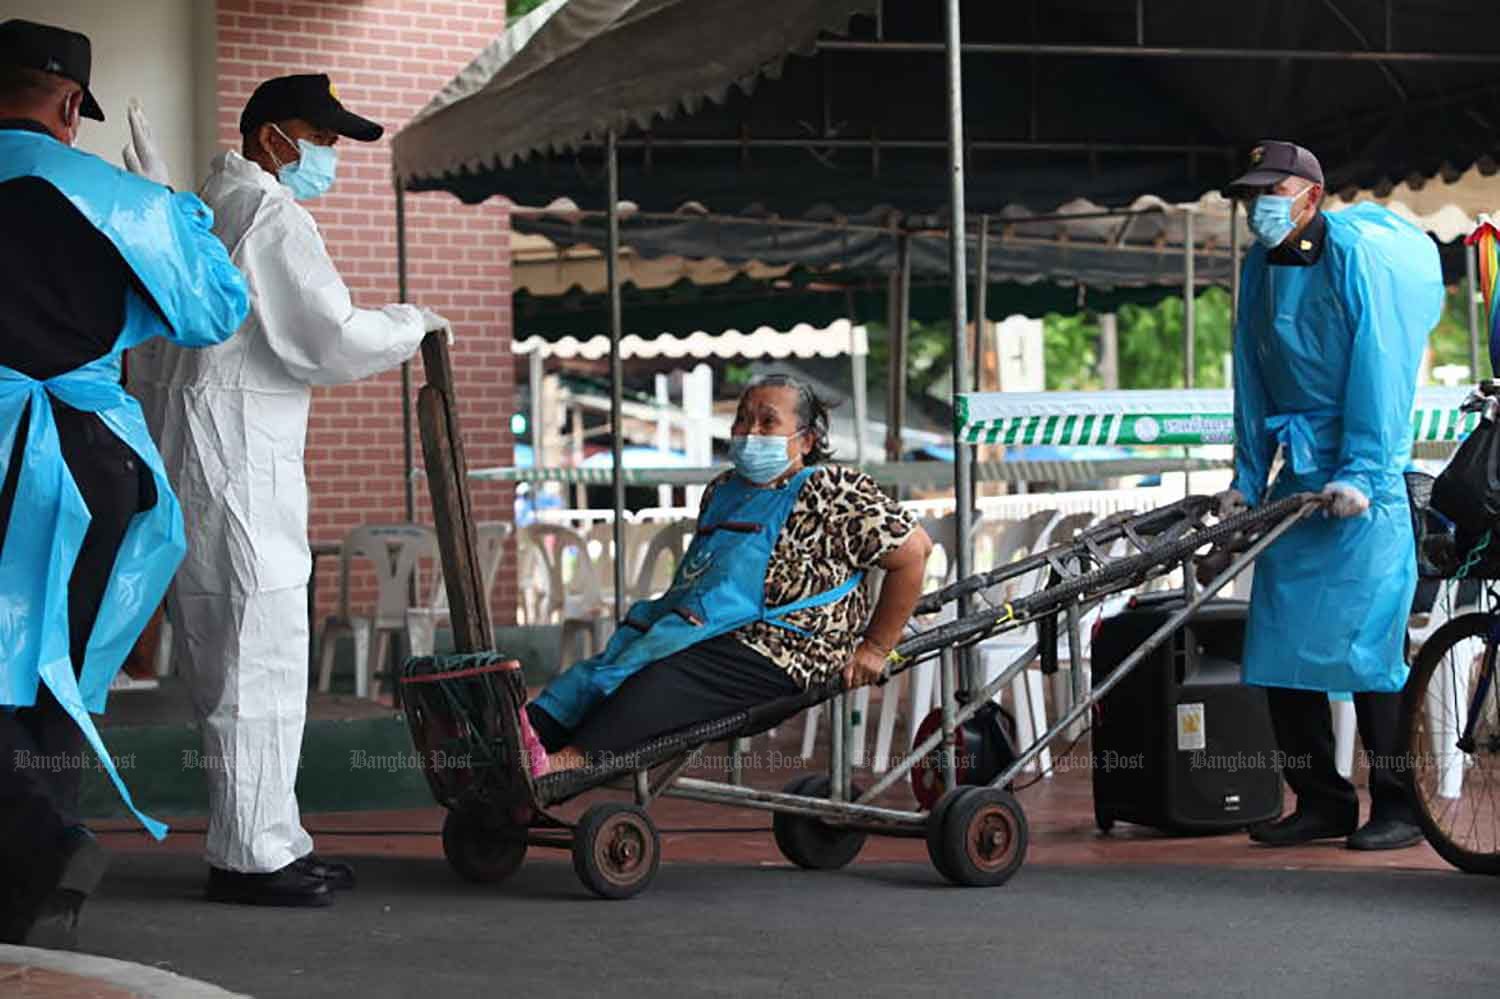 Medical workers use a handcart to move an elderly woman to a Covid testing site located in Mahanak fresh market in Bangkok's Dusit district on Friday. (Photo: Apichart Jinakul)